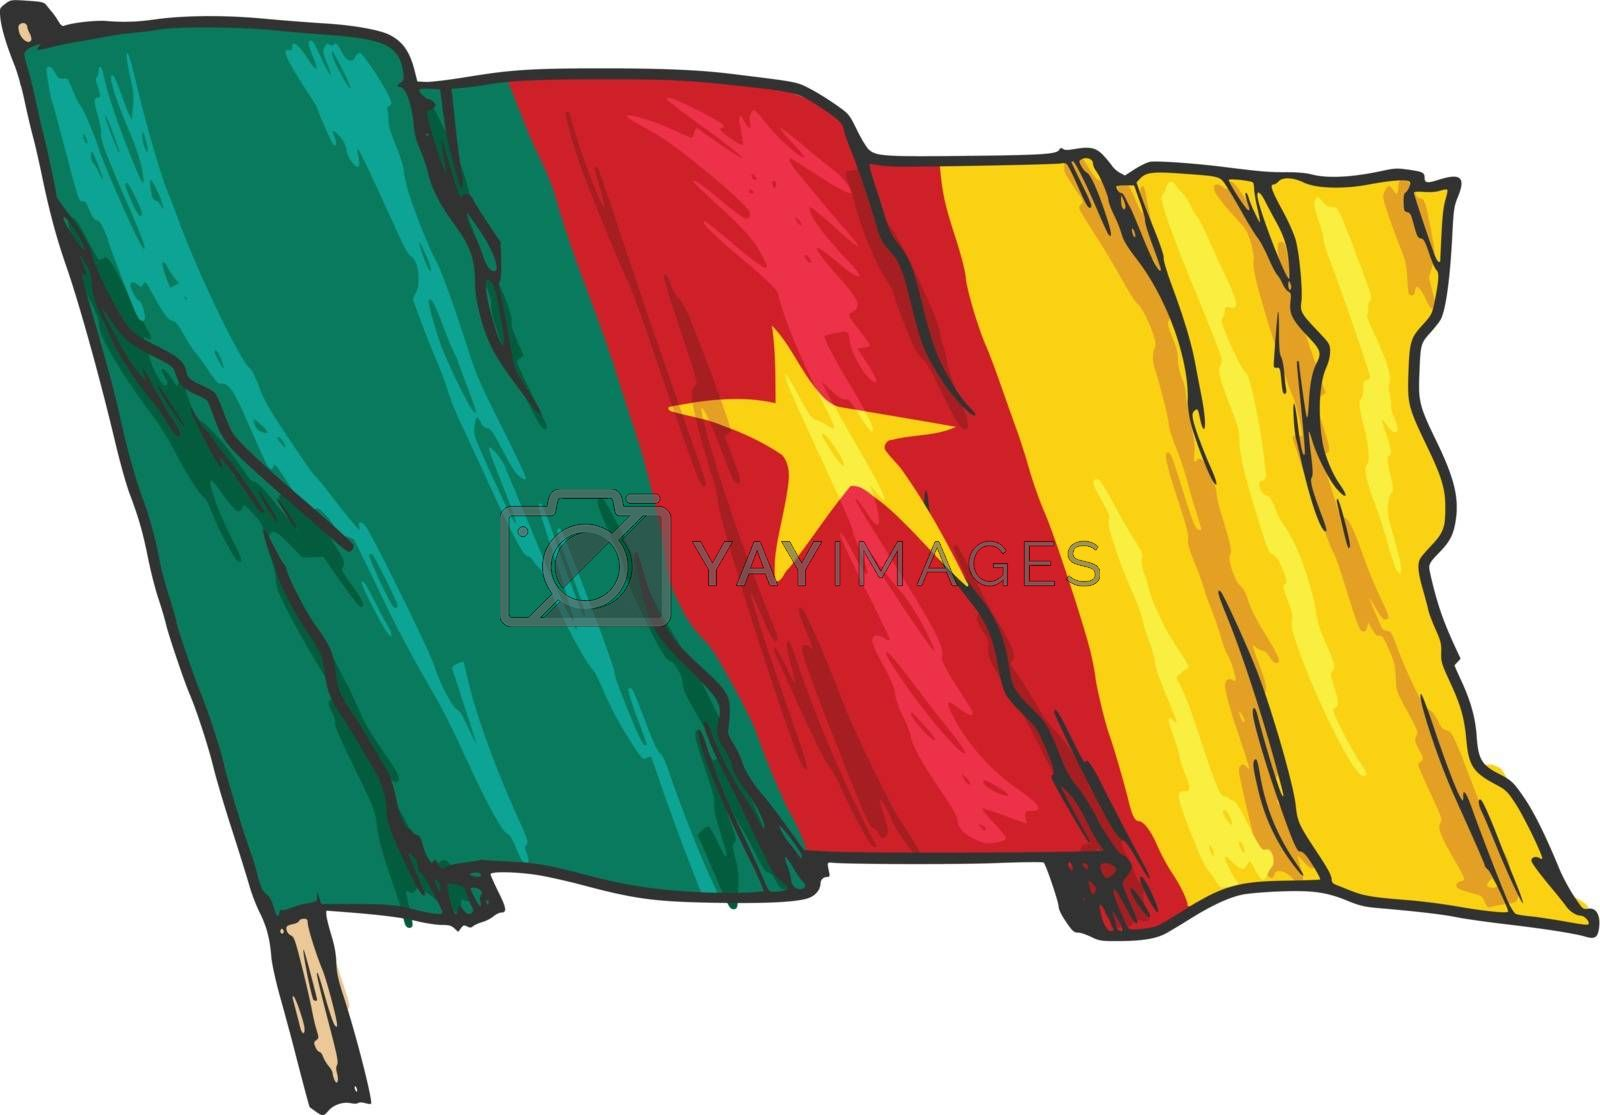 hand drawn, sketch, illustration of flag of Cameroon